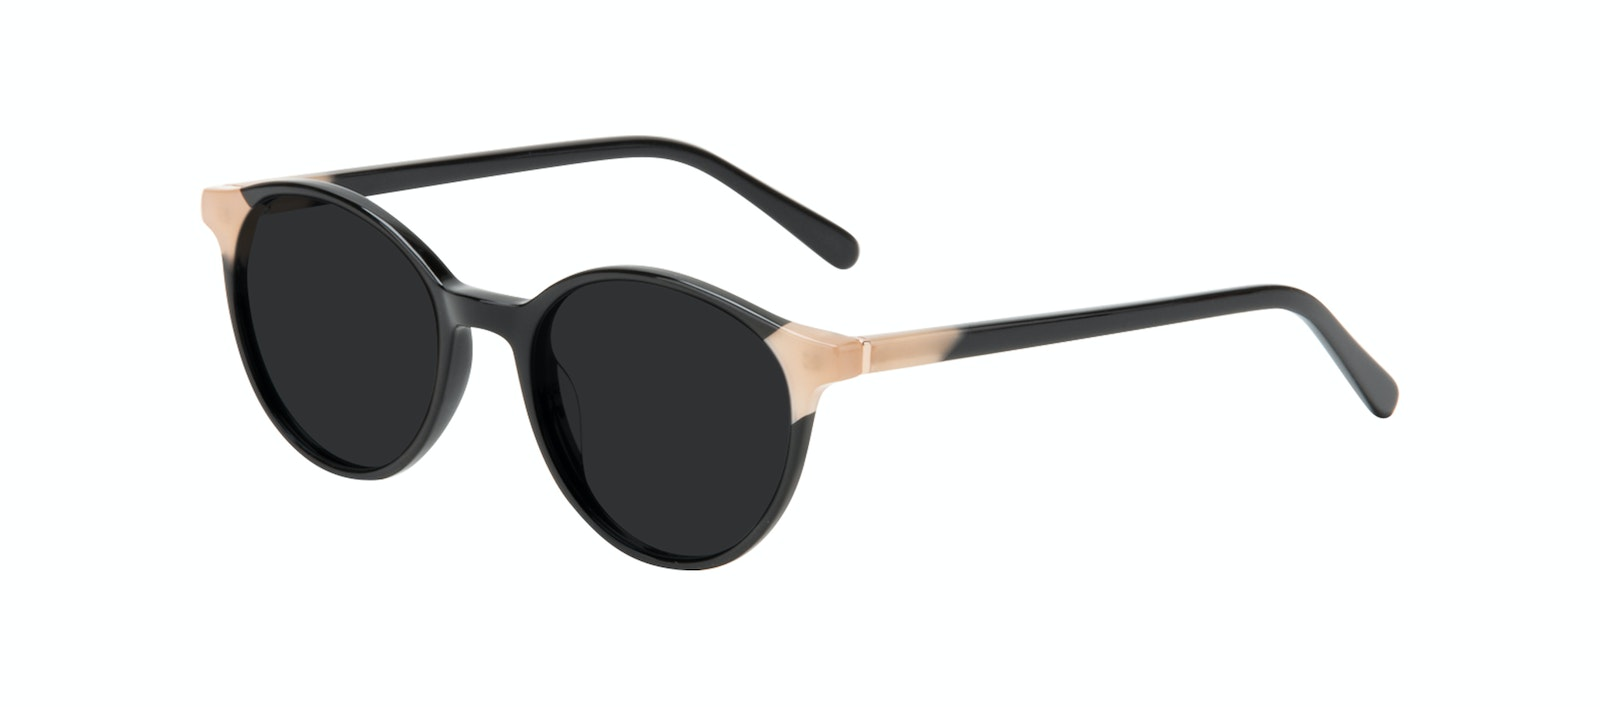 Affordable Fashion Glasses Round Sunglasses Women Vivid Black Ivory Tilt